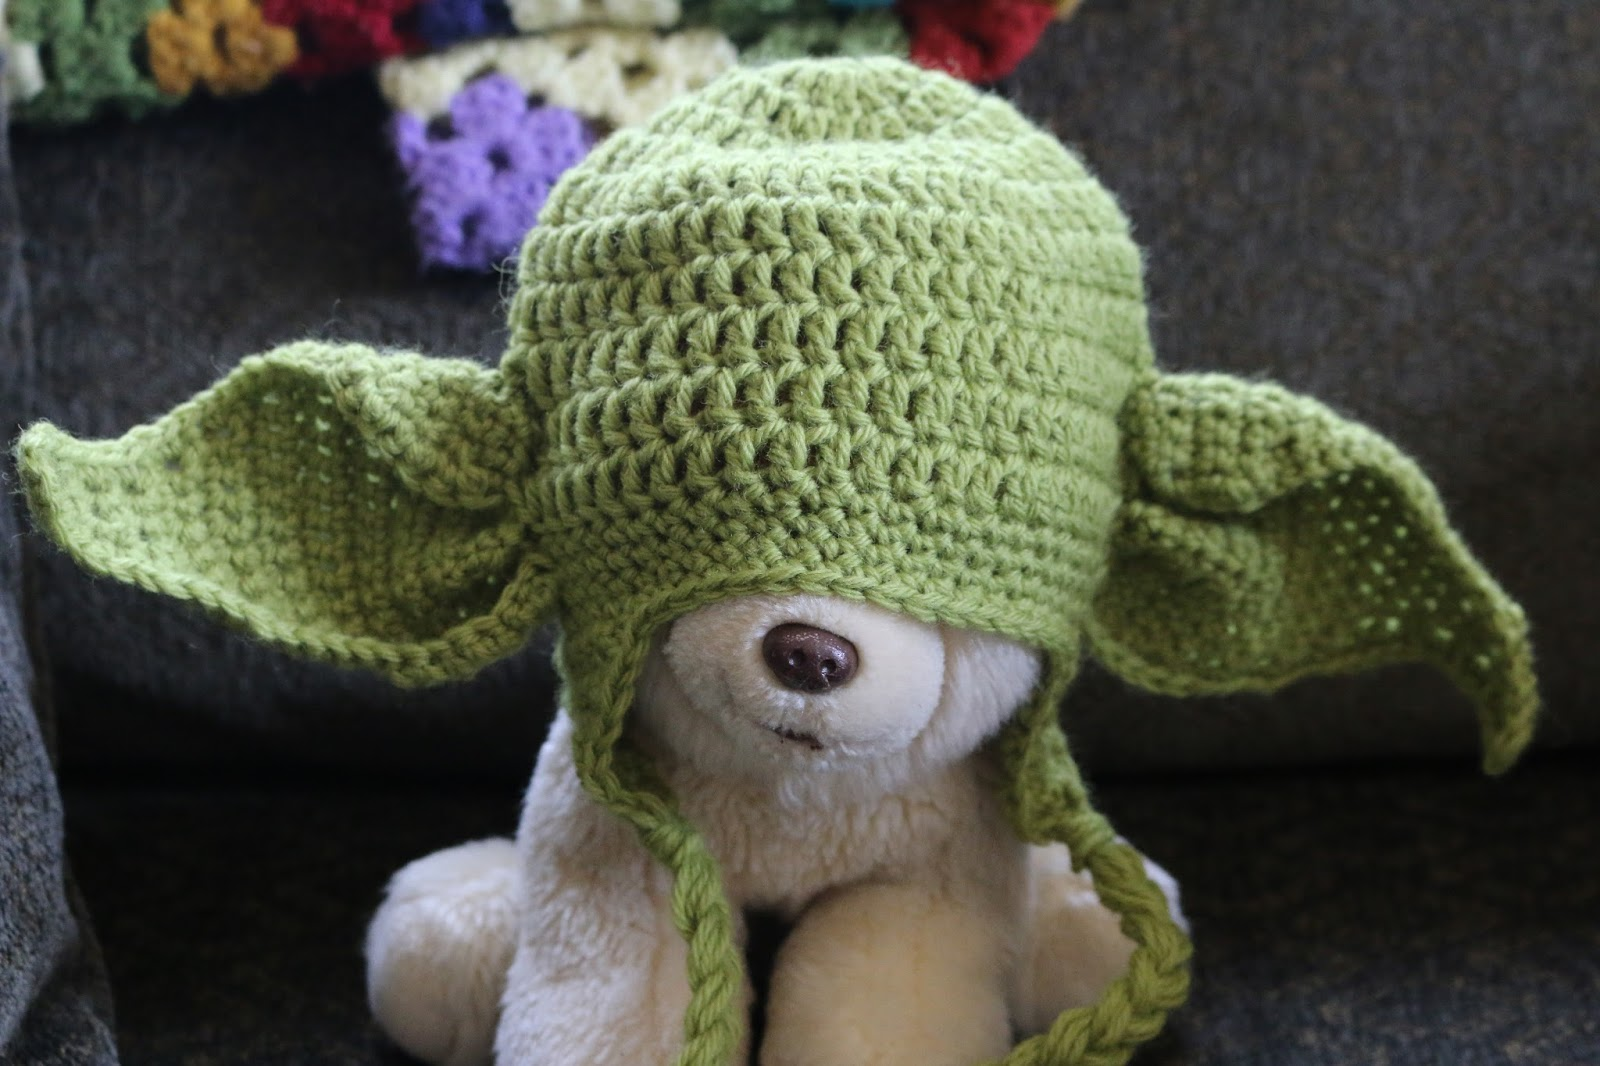 Chemknits crochet a yoda baby hat i will in the end i selected tory feykos yoda hat crochet pattern i am always nervous when i purchase a pattern that has very few ravelry projects dt1010fo